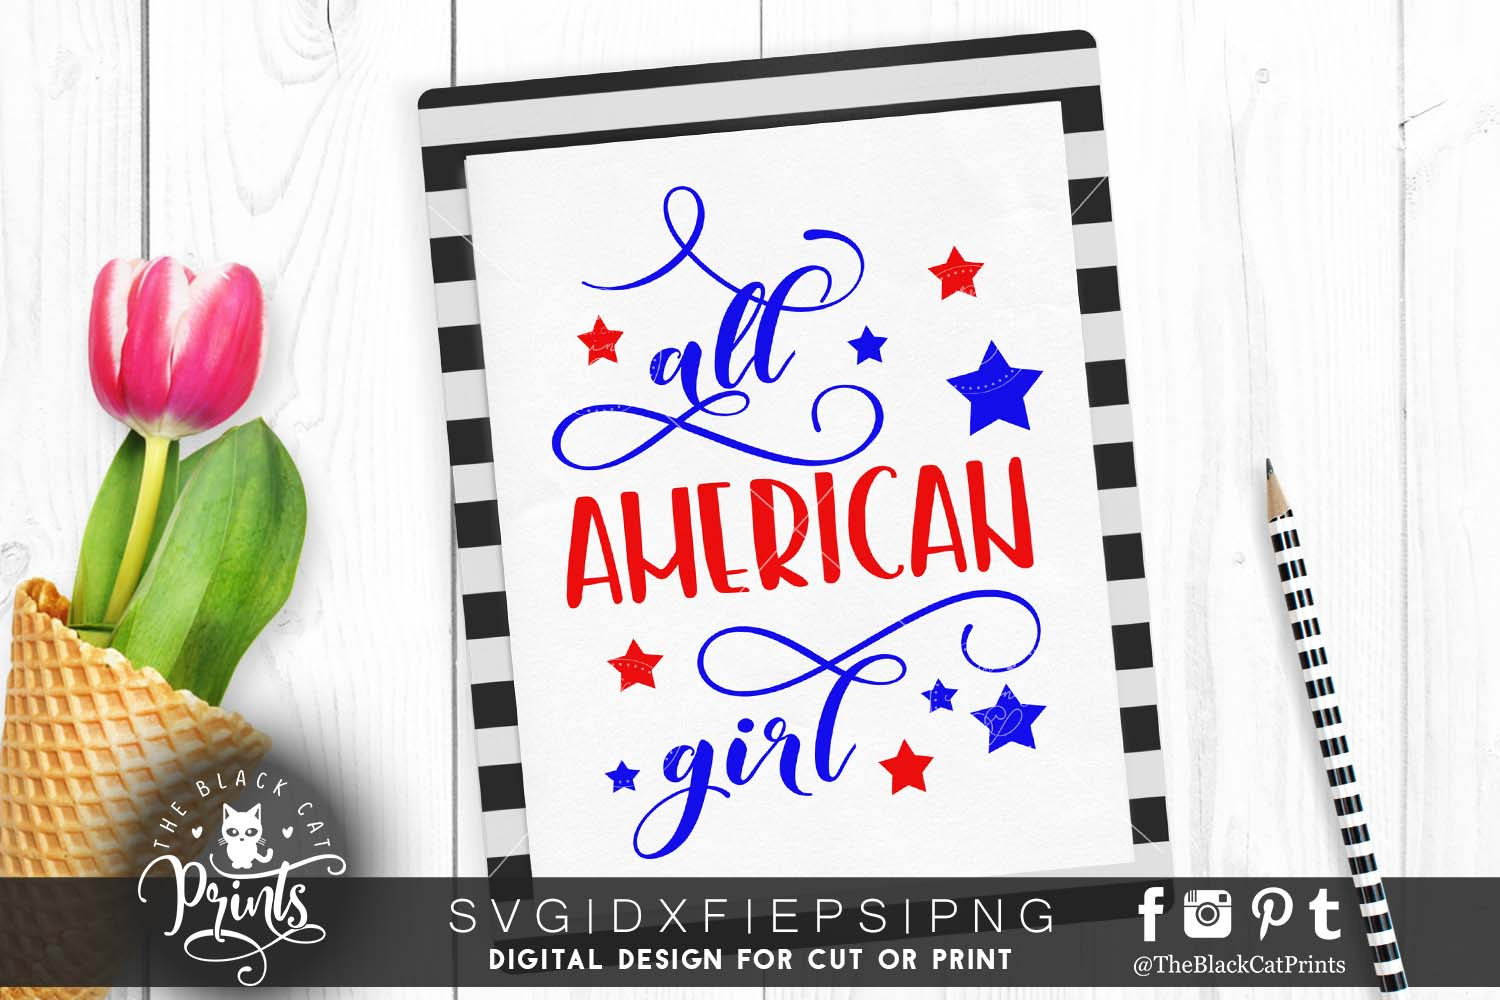 All American girl SVG PNG EPS DXF example image 1